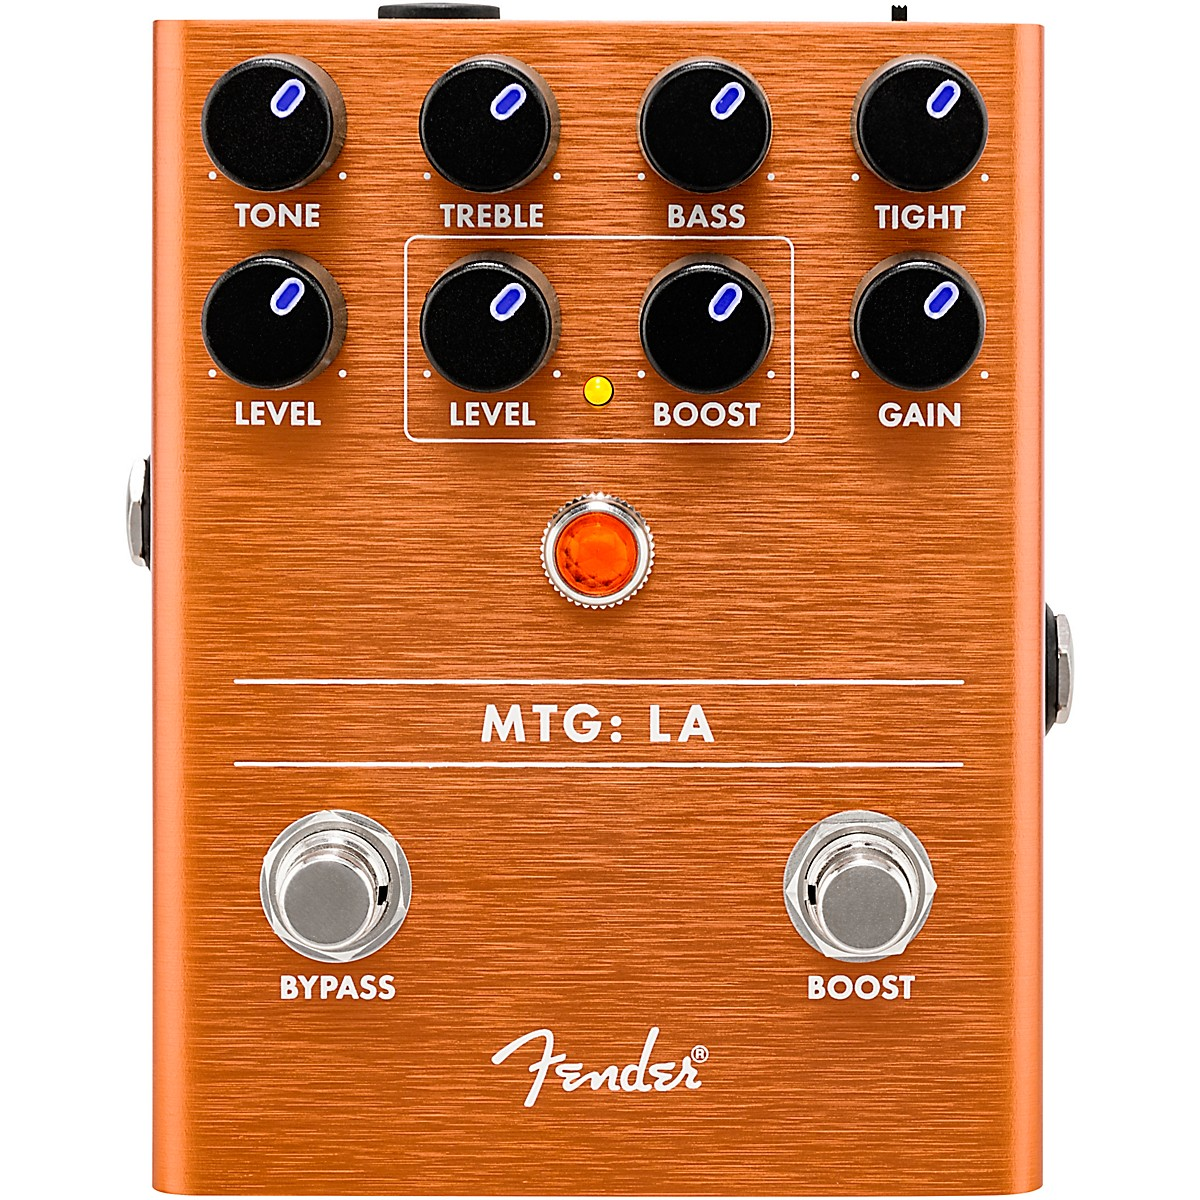 Fender MTG: LA Tube Distortion Effects Pedal